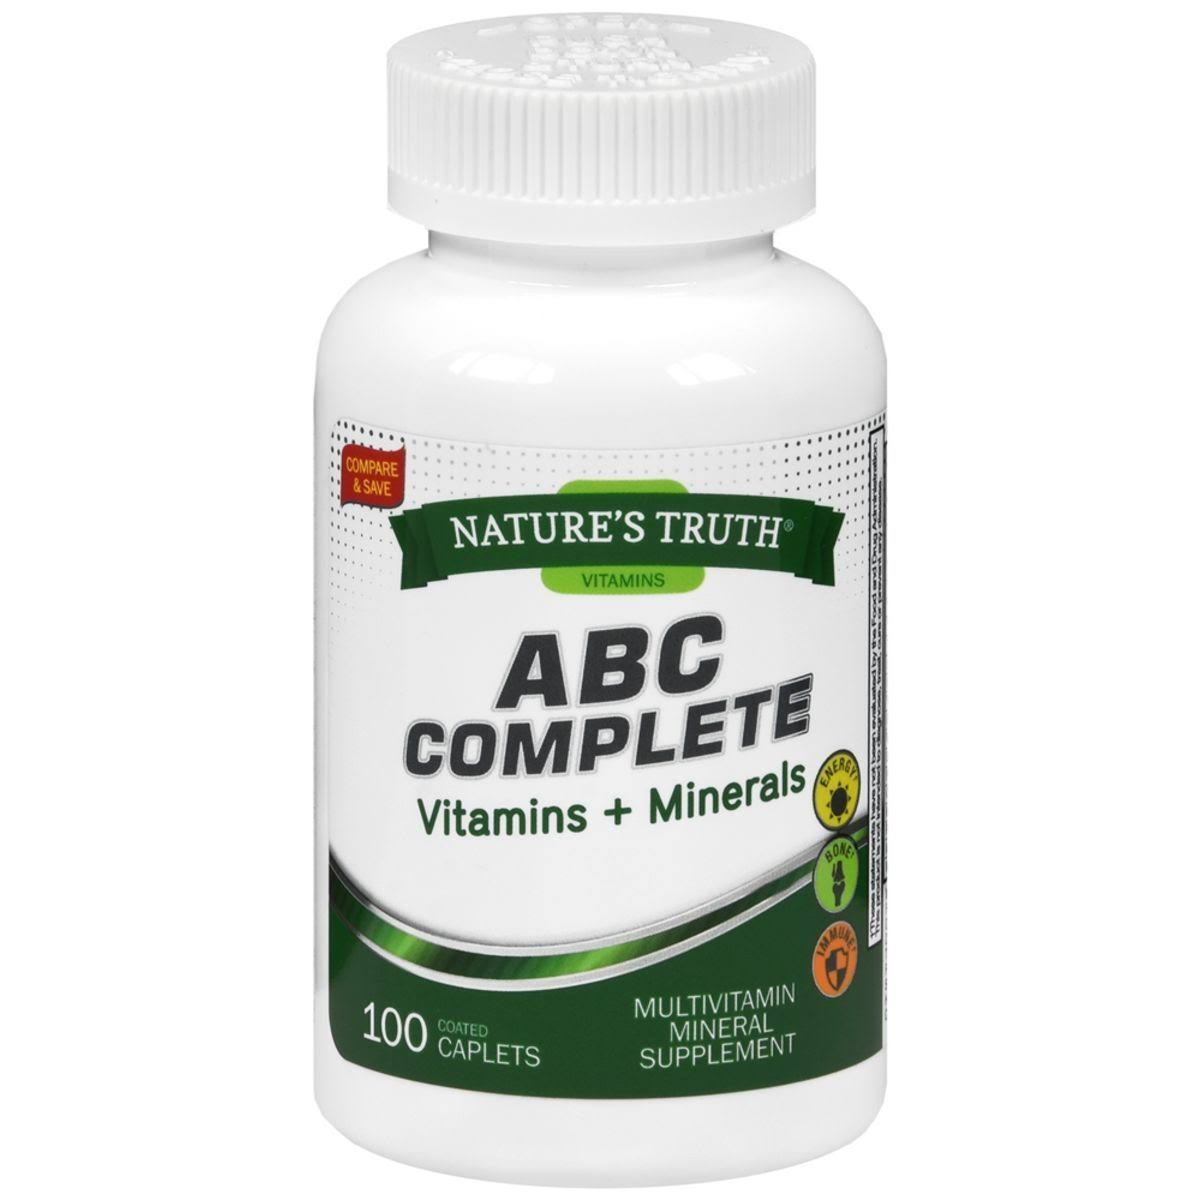 Nature's Truth ABC Complete Vitamins + Minerals Multivitamin Mineral Supplement Coated Caplets - 100 TB